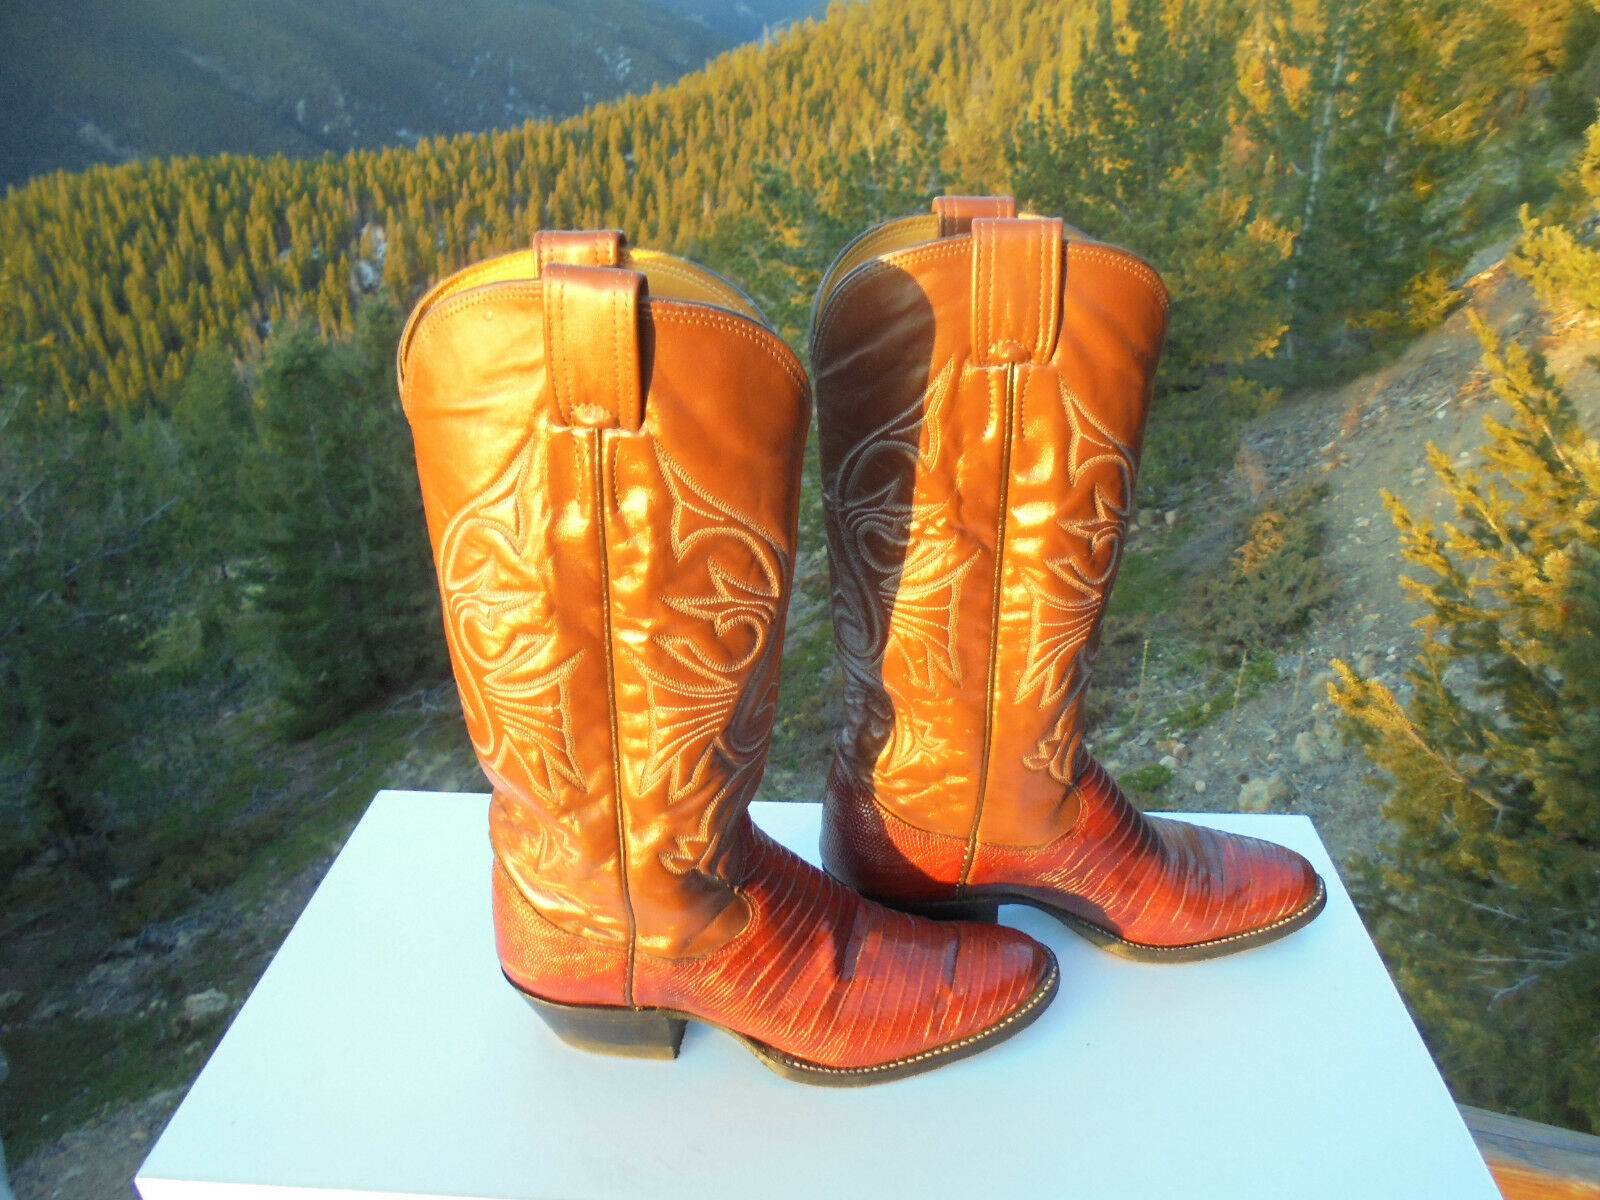 OLATHE Snake Skin Damens's Western Stiefel with Decorative Stitching USA Größe 7.5B